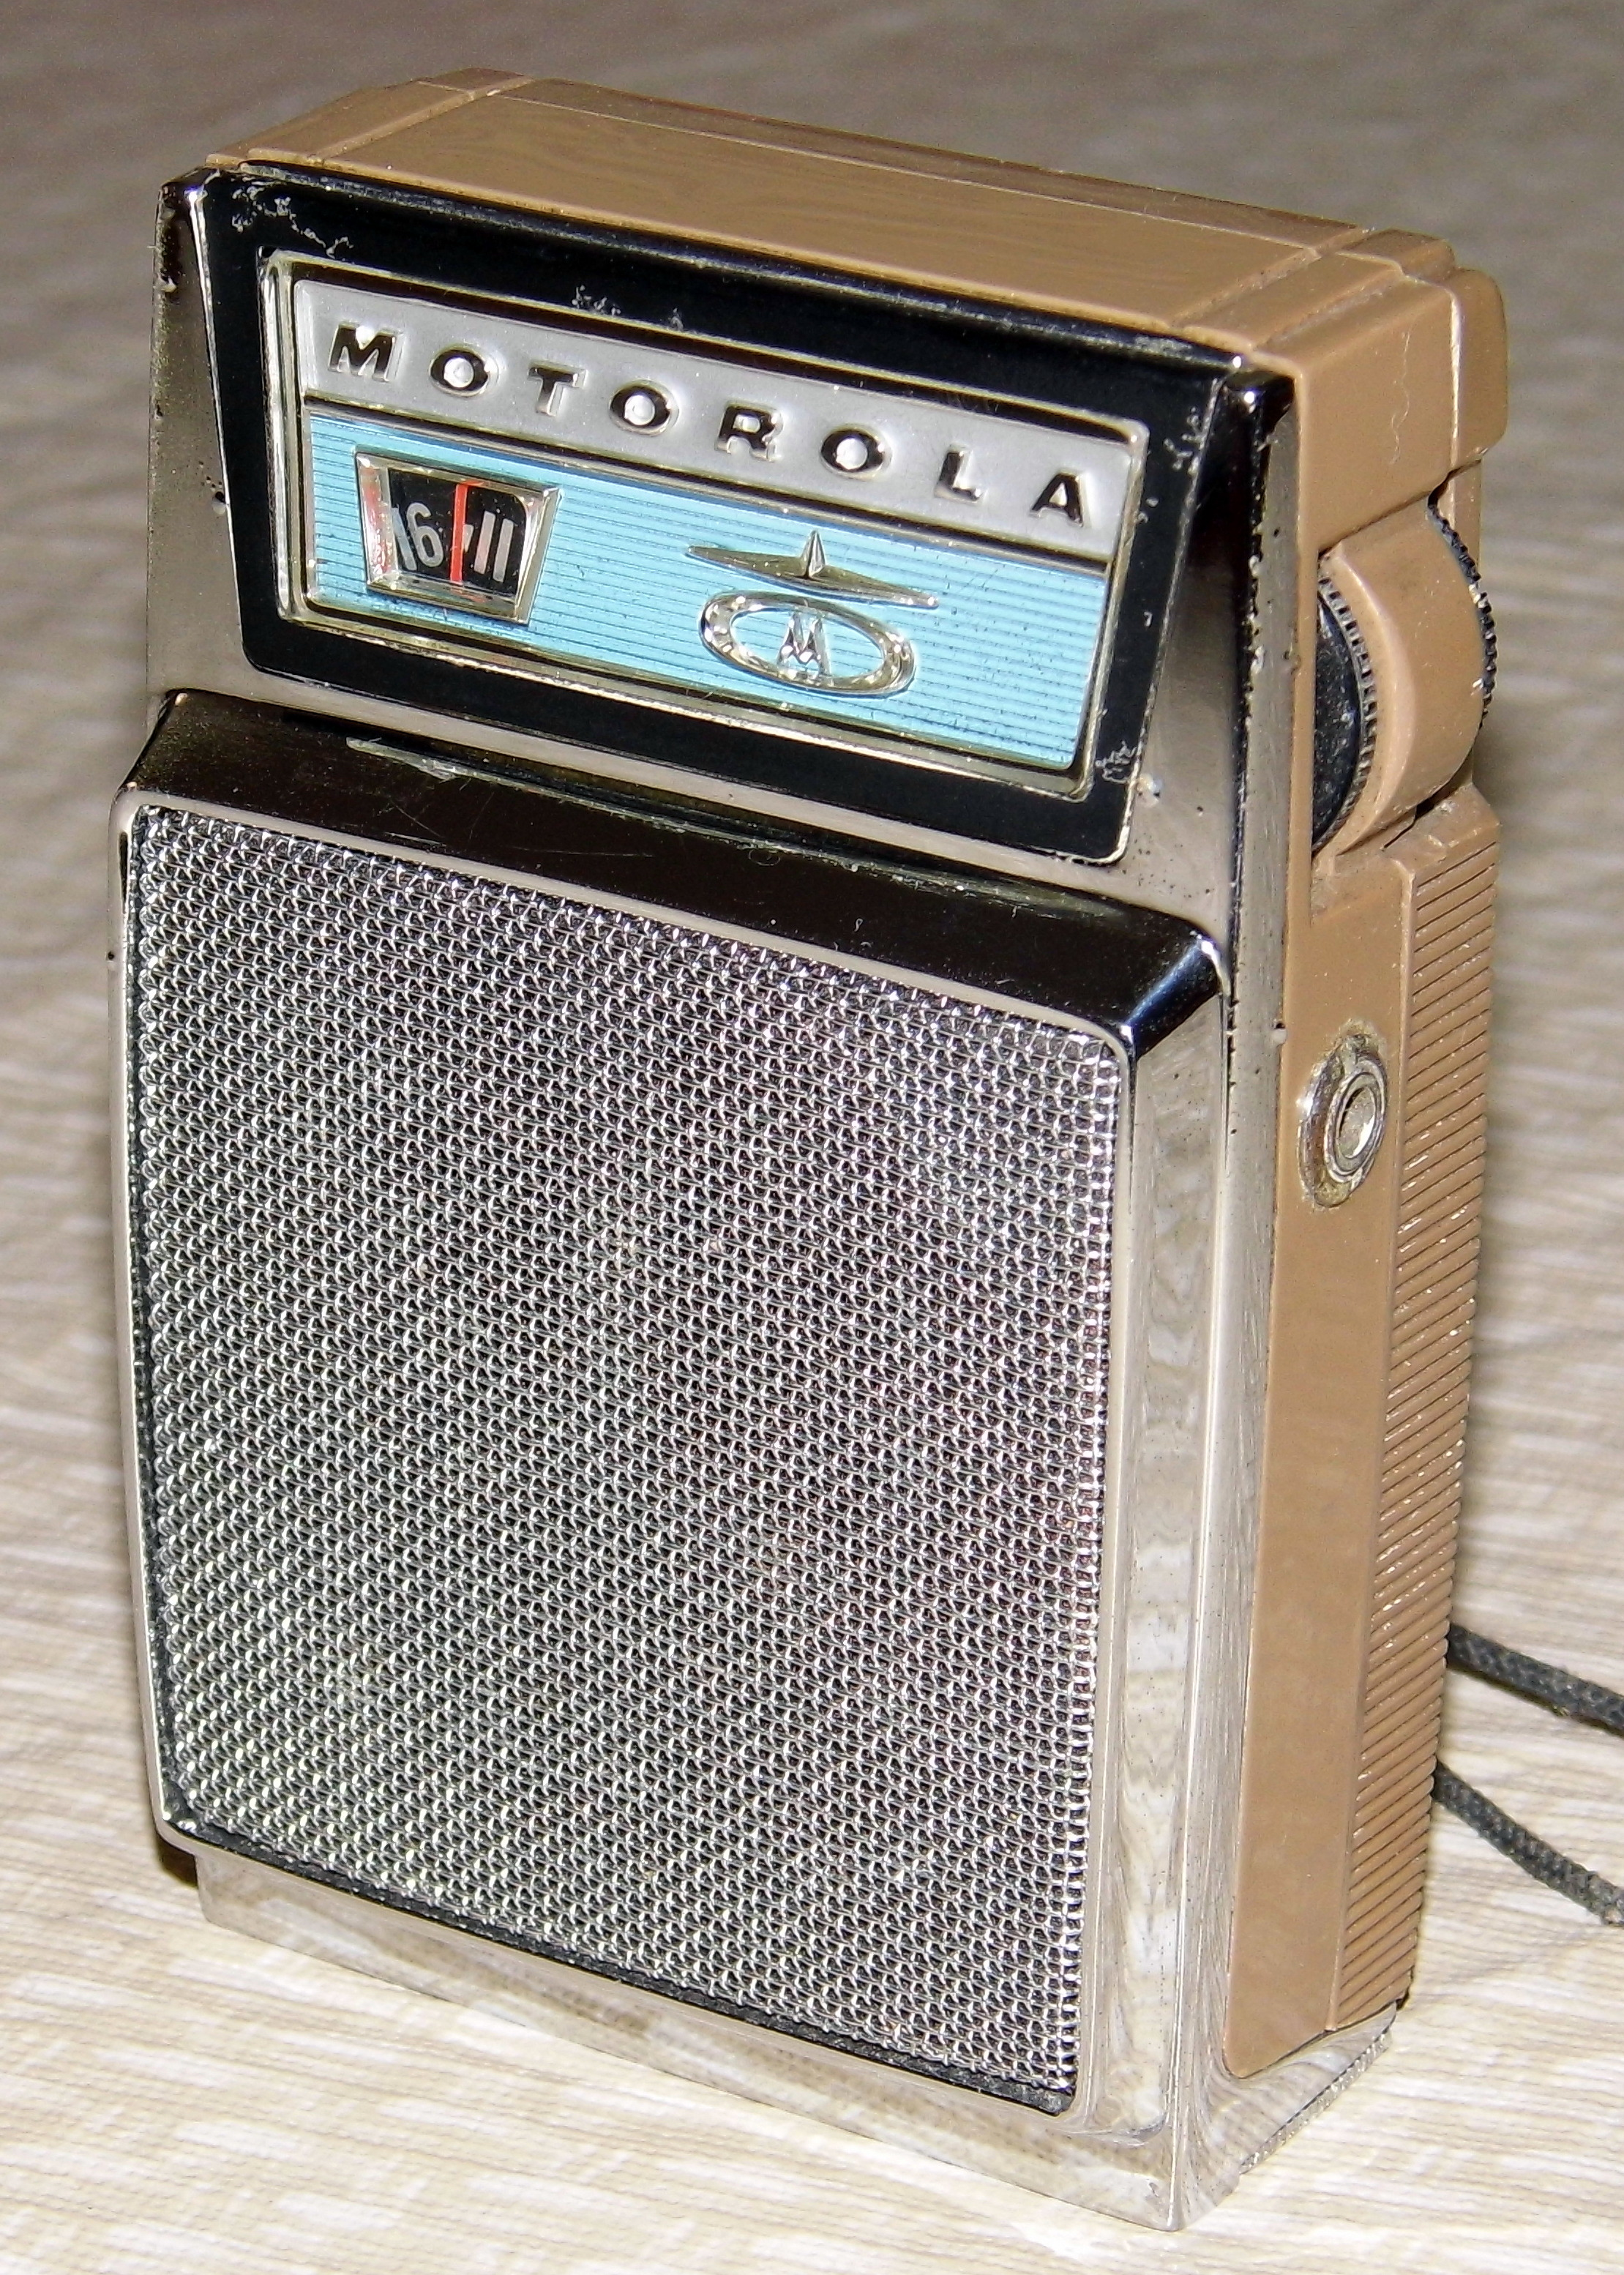 Blog moreover 151827160230 in addition Vacuum Tube together with Anglo American Popular Culture In Peace as well M 1MCB0ZWNobm9sb2d5ICBpbnZlbnRpb25z. on transistor radio from 1940s